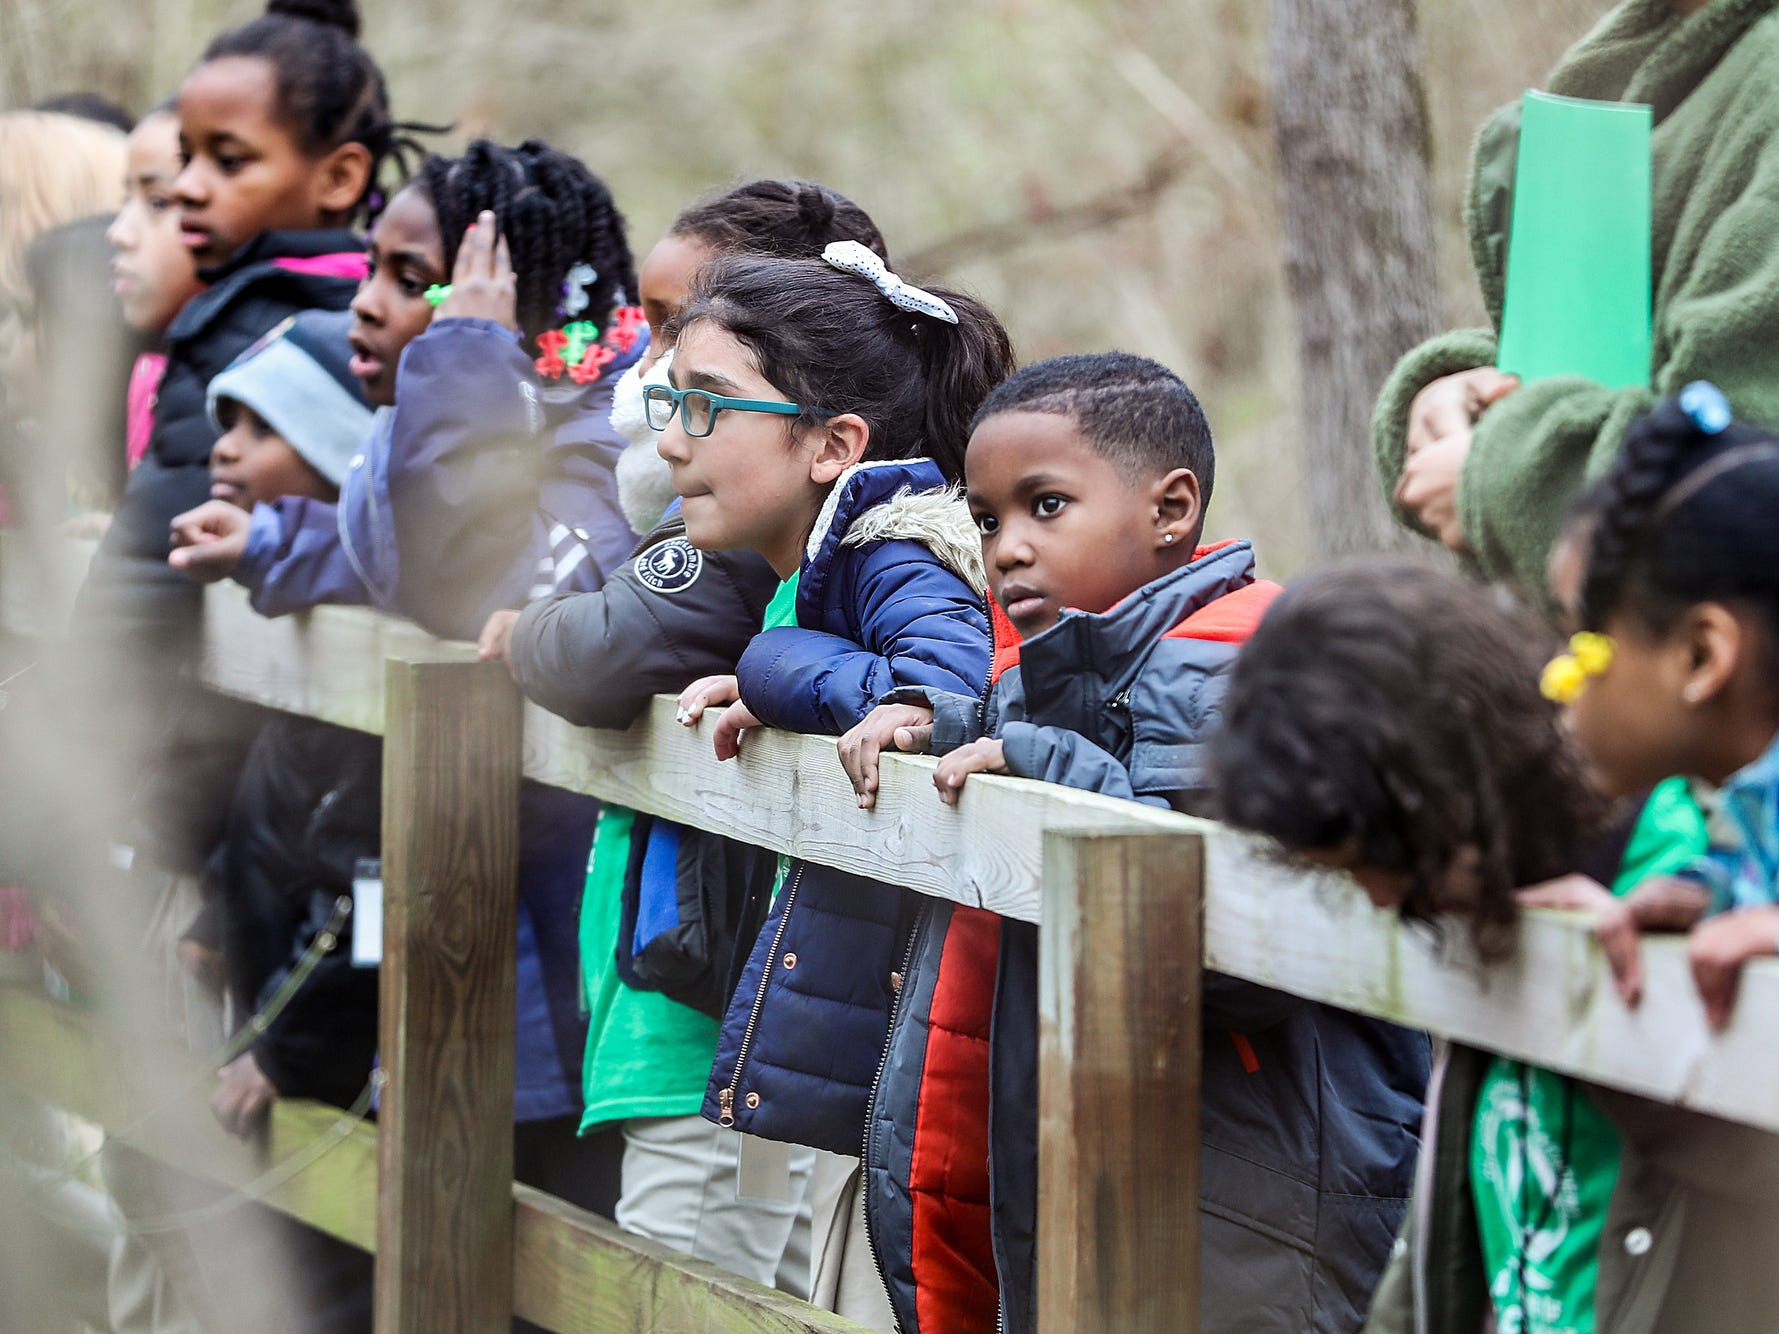 Second grade students from Global Preparatory Academy explore nature on a field trip to Jameson Camp in Indianapolis, Friday, Nov. 30, 2018.